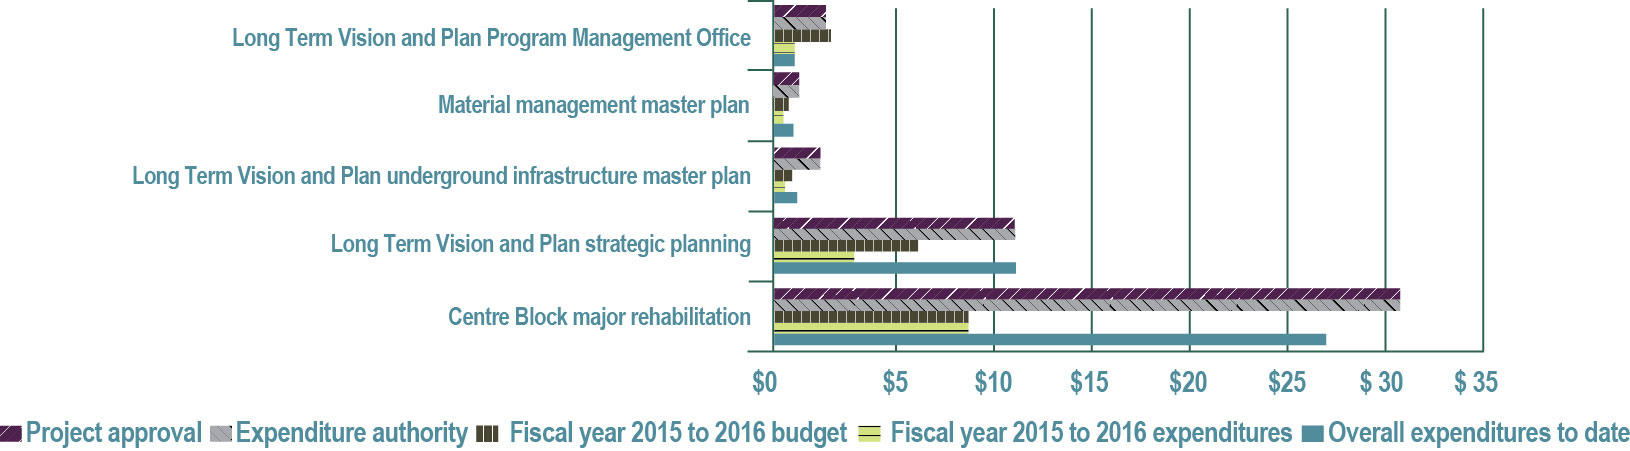 Figure 29—Planning program project spending—Fiscal year 2015 to 2016 (in millions of dollars) - See description below.